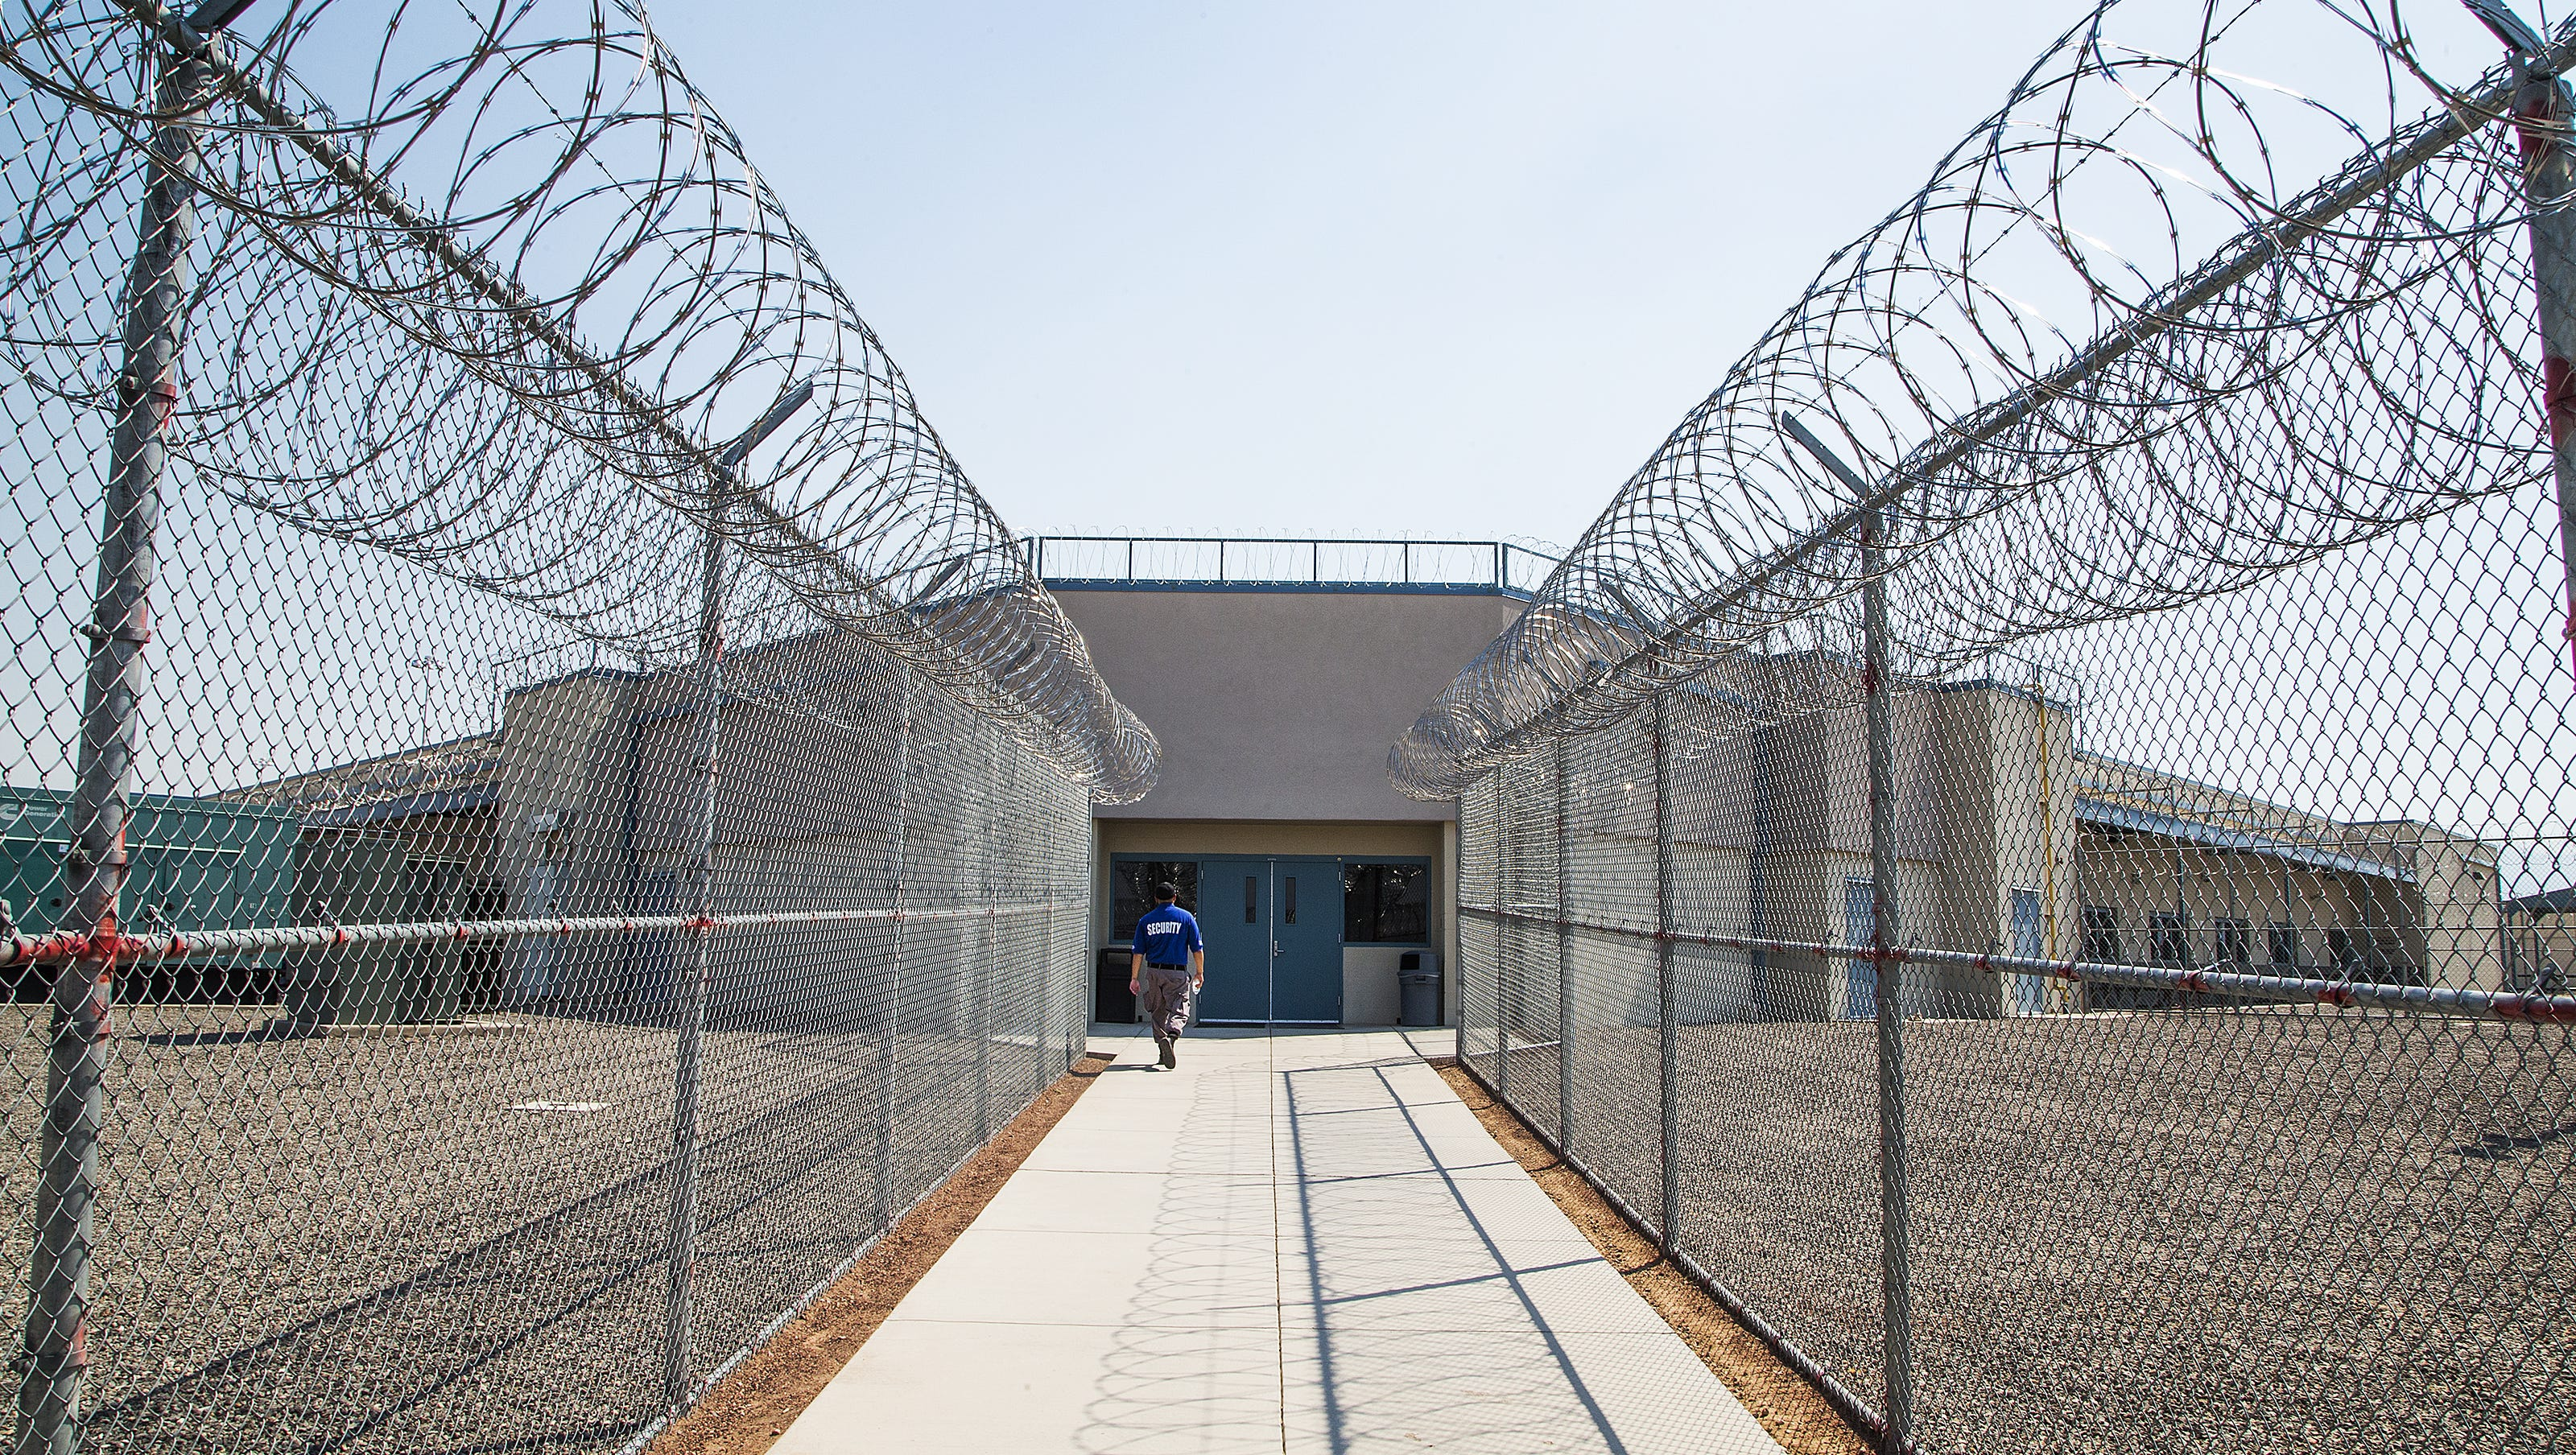 Retirement board may divest from private prisons